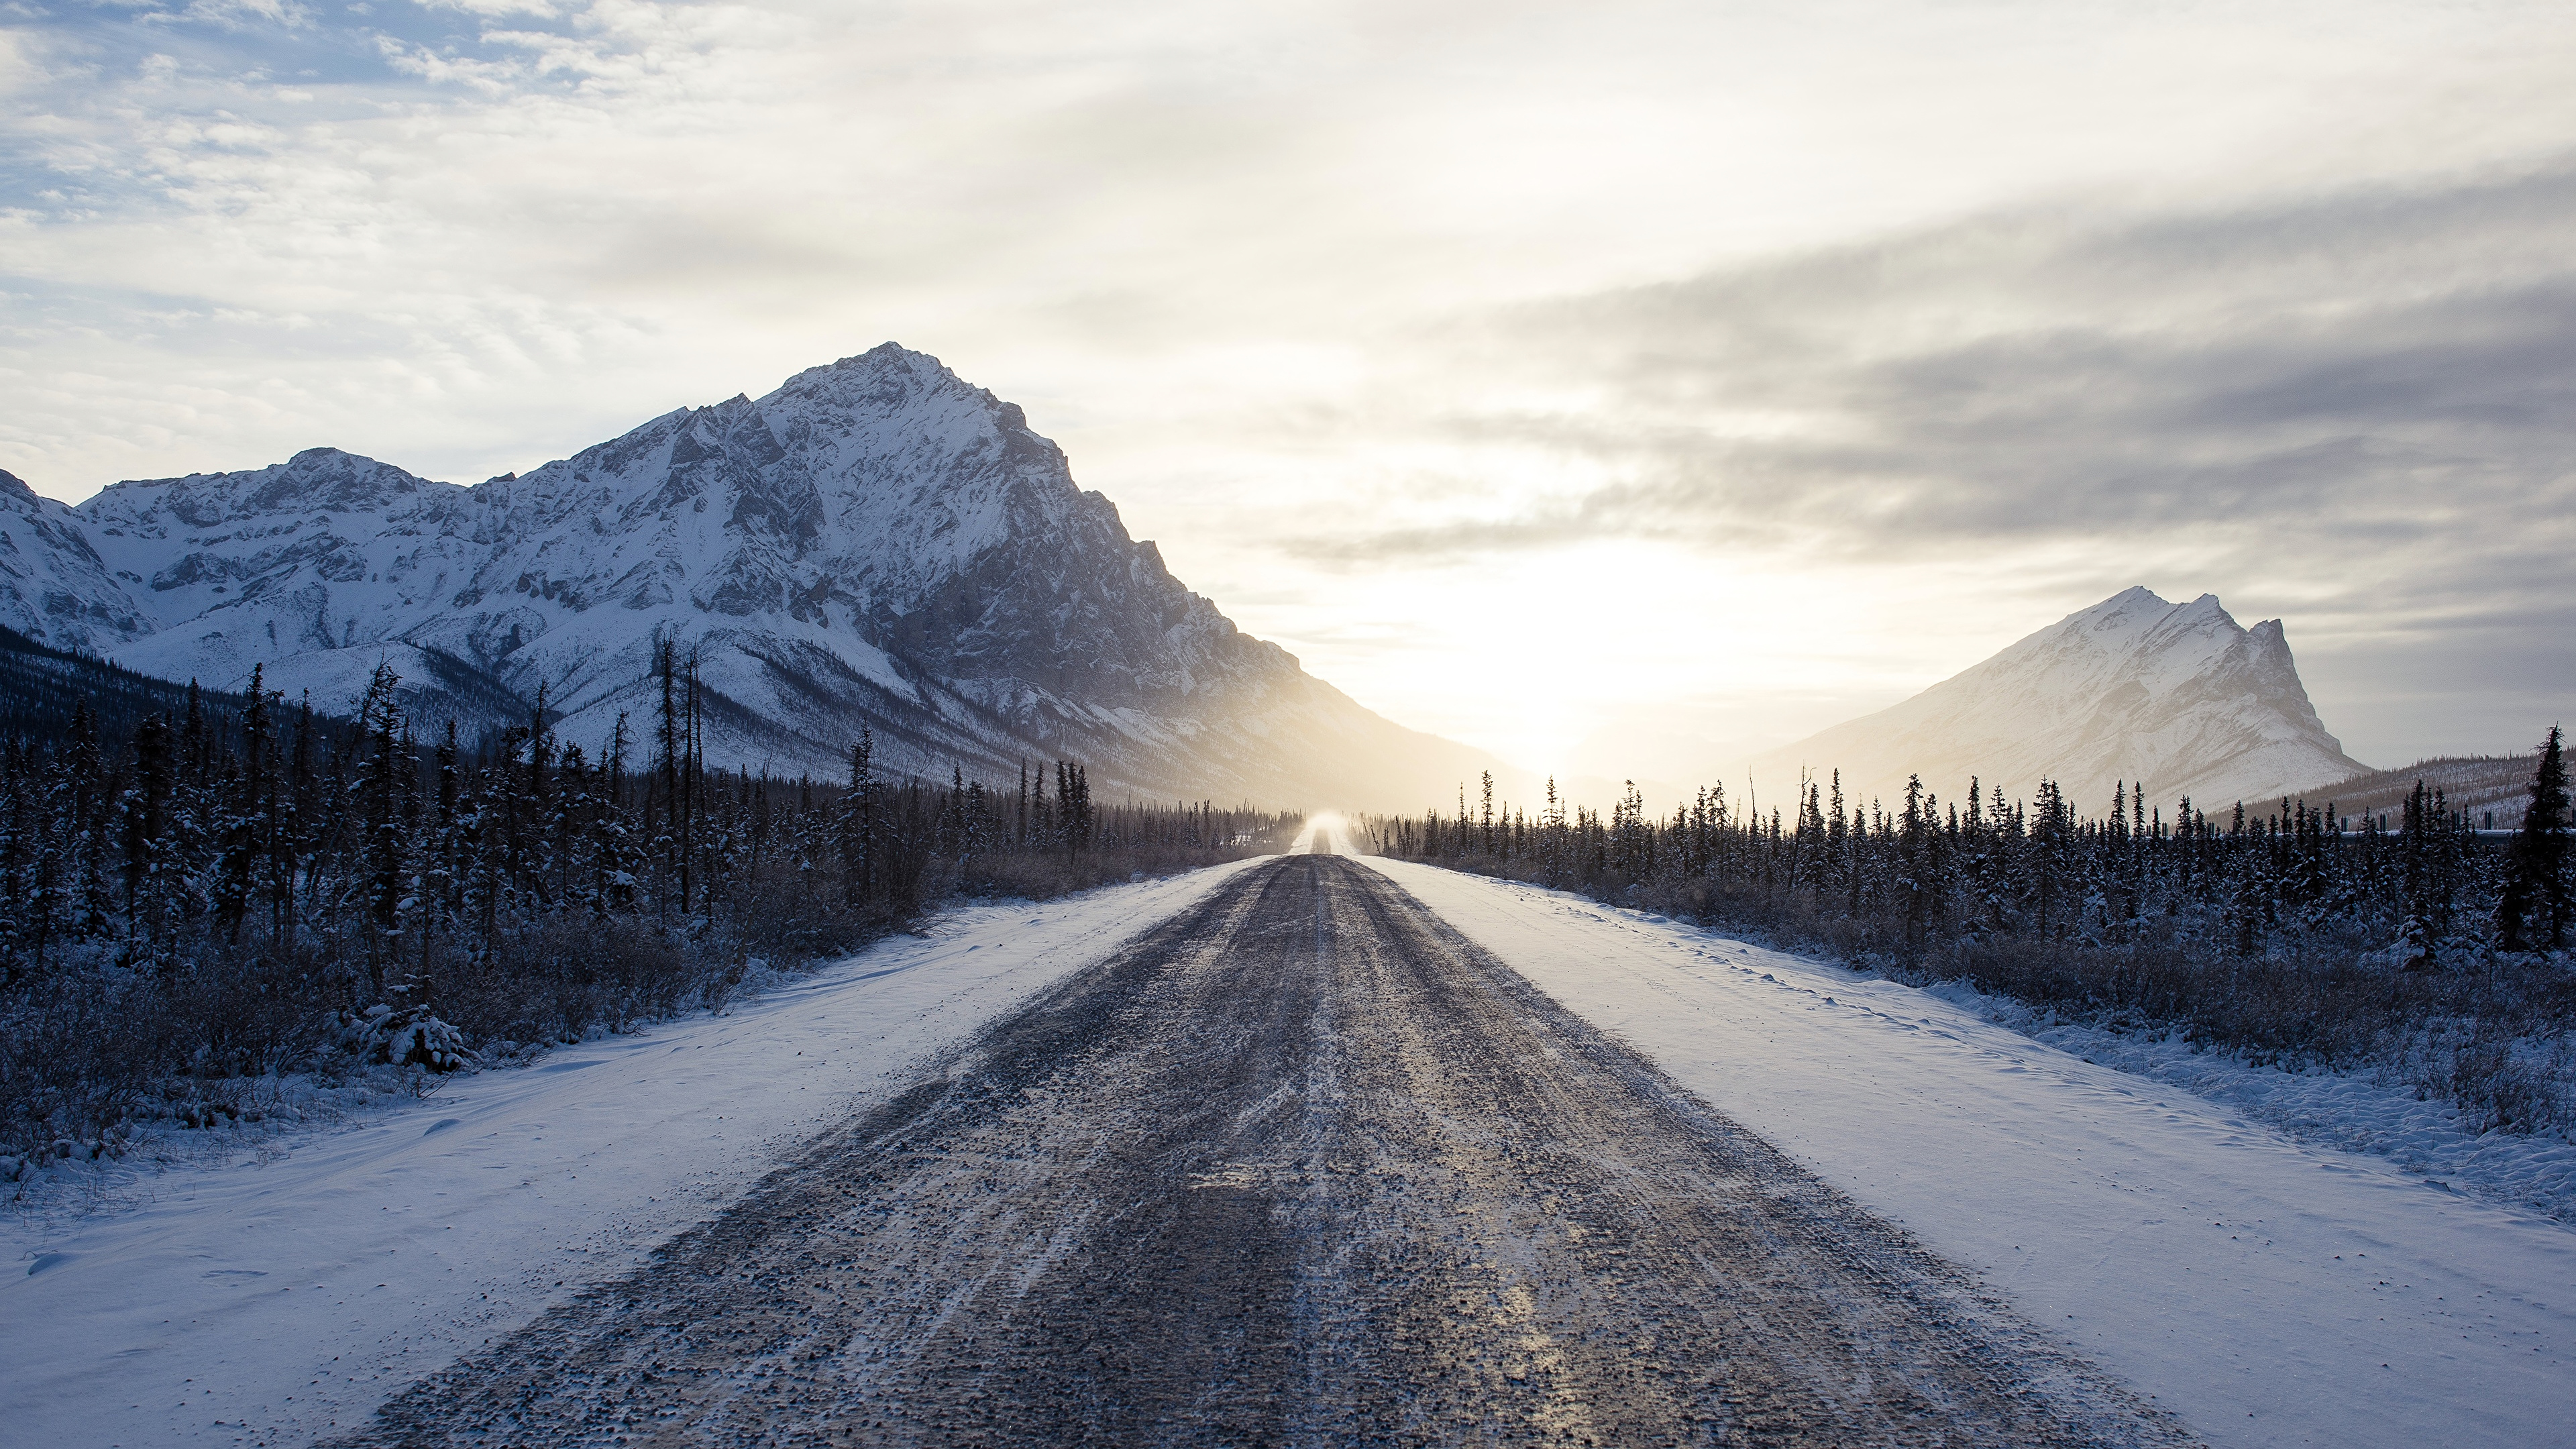 Winter Road Mountains 4k Hd Nature 4k Wallpapers Images Backgrounds Photos And Pictures